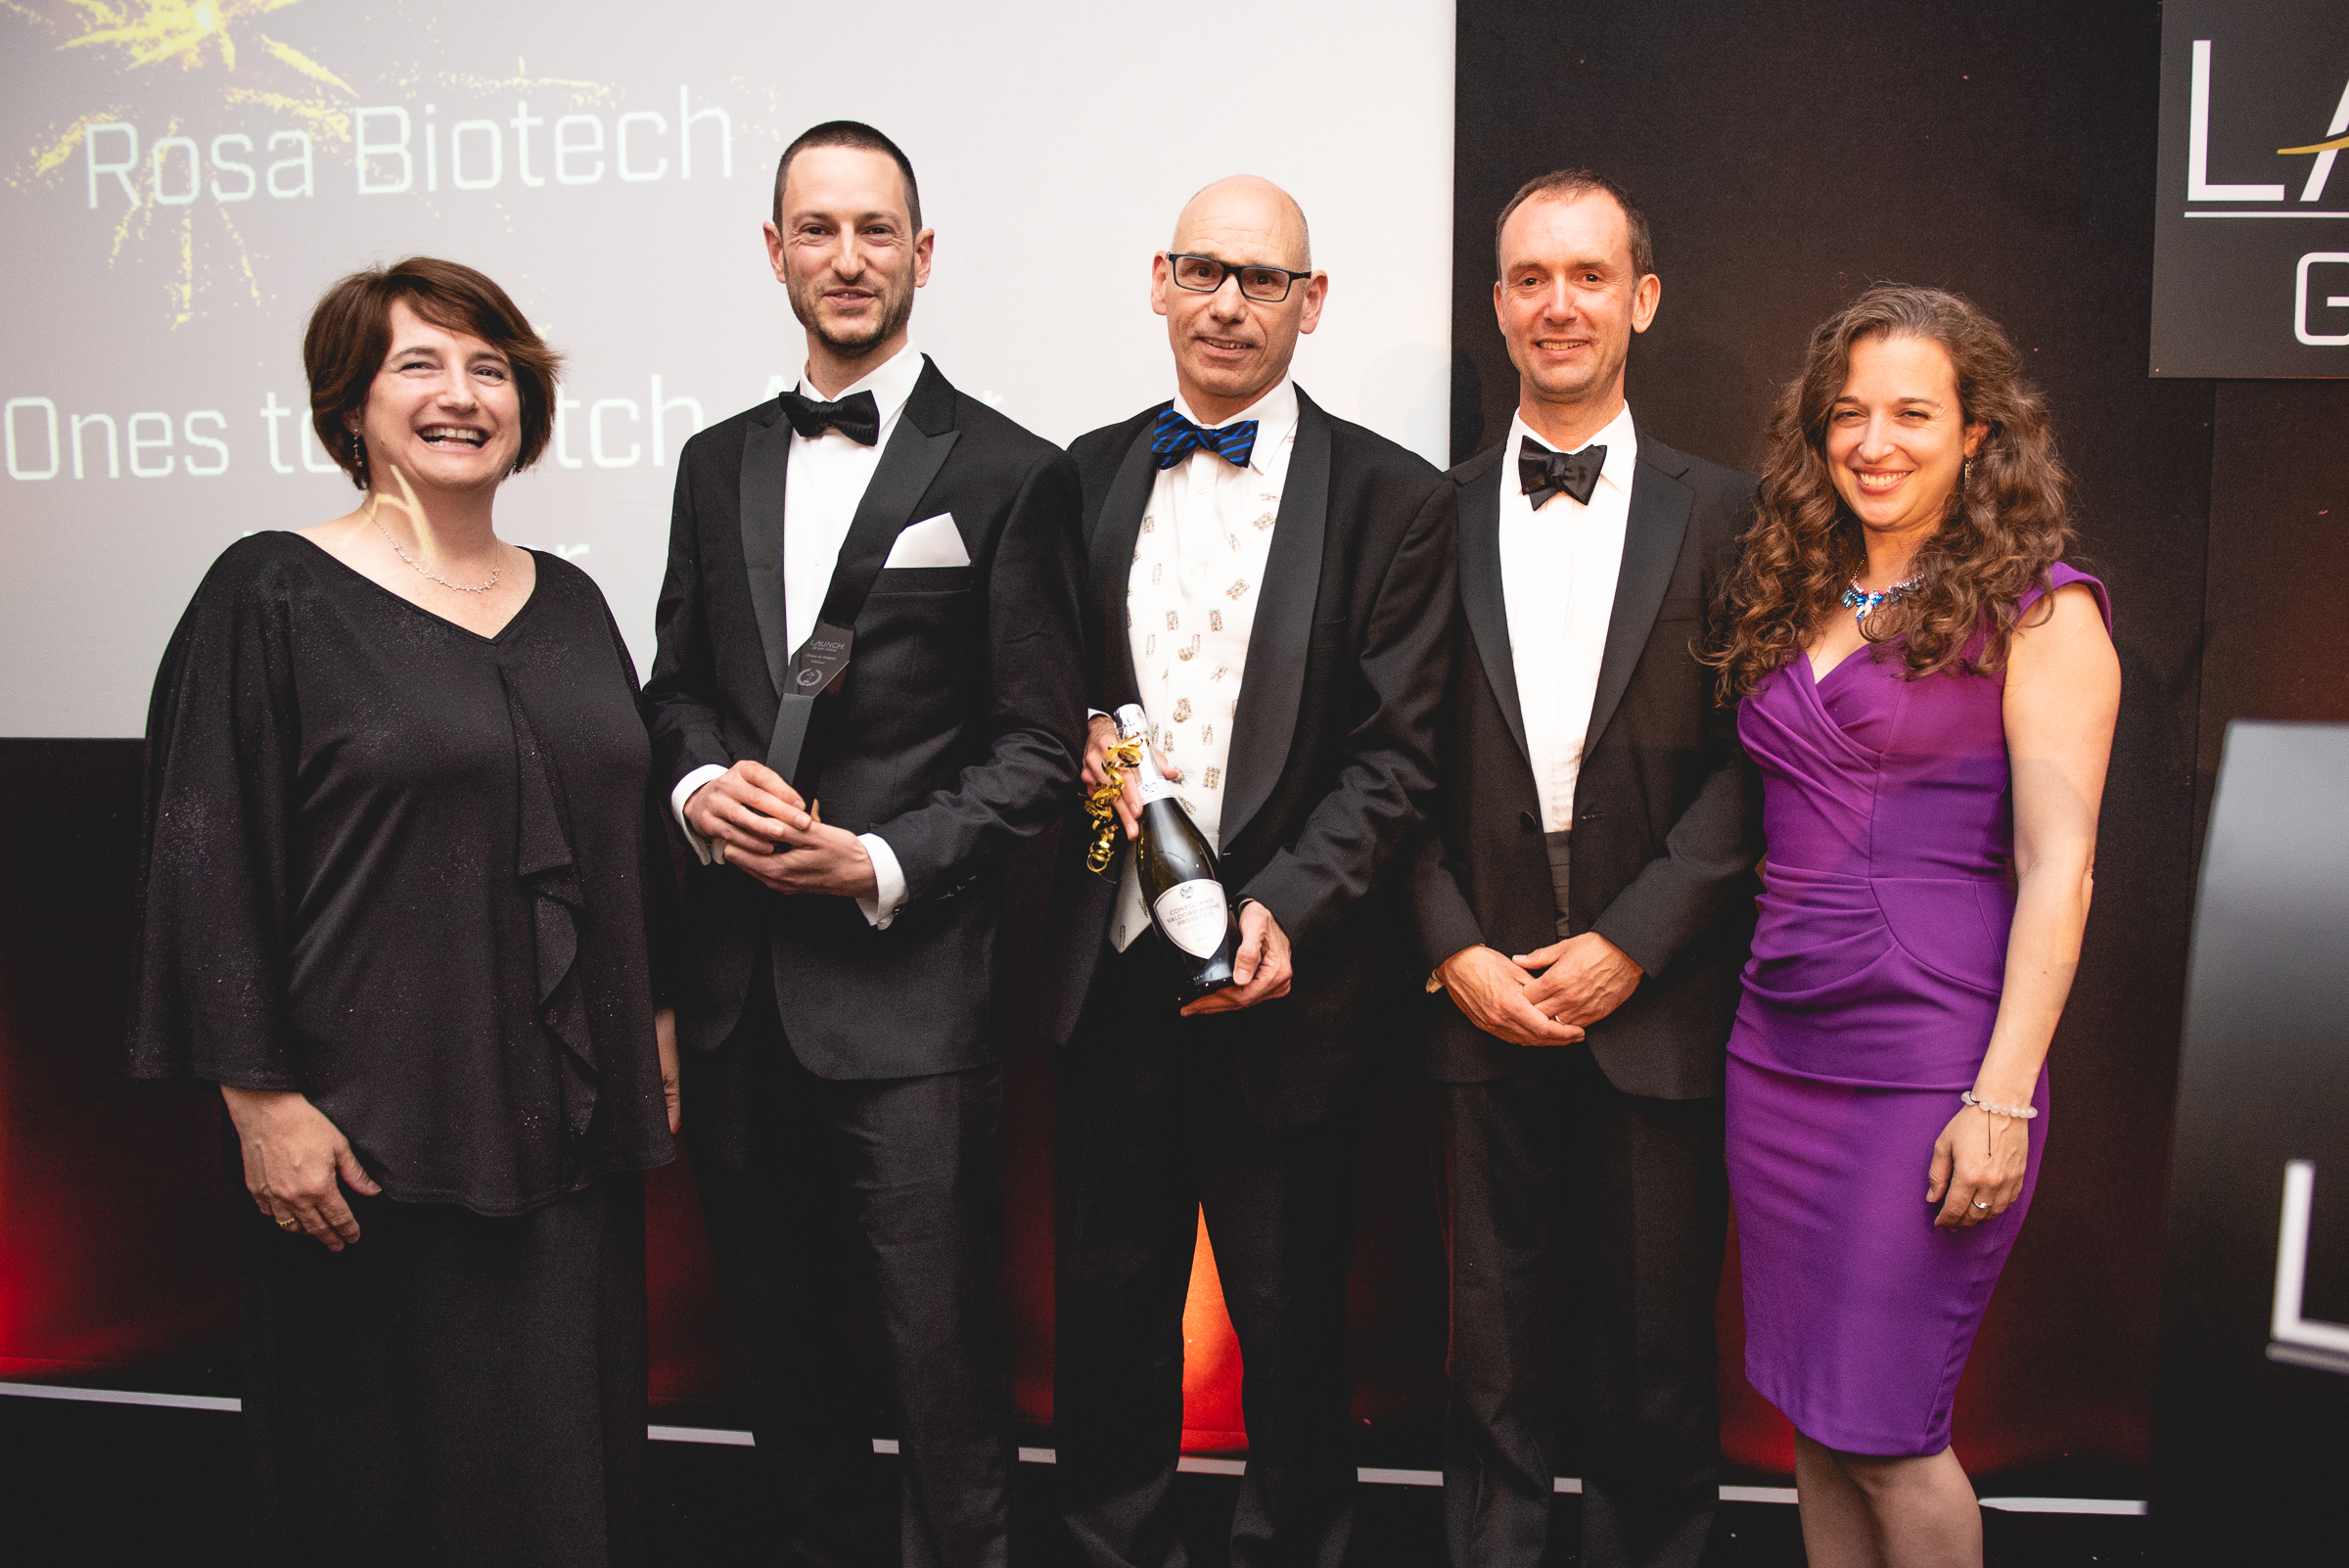 Rosa Biotech team, winners of the Ones to Watch Award with award sponsors from Research and Enterprise Development, University of Bristol  L to R; Jaci Barnett, Dr Andy Boyce, Prof. Dek Woolfson, Dr Jon Hunt, Dr Emily Grossman